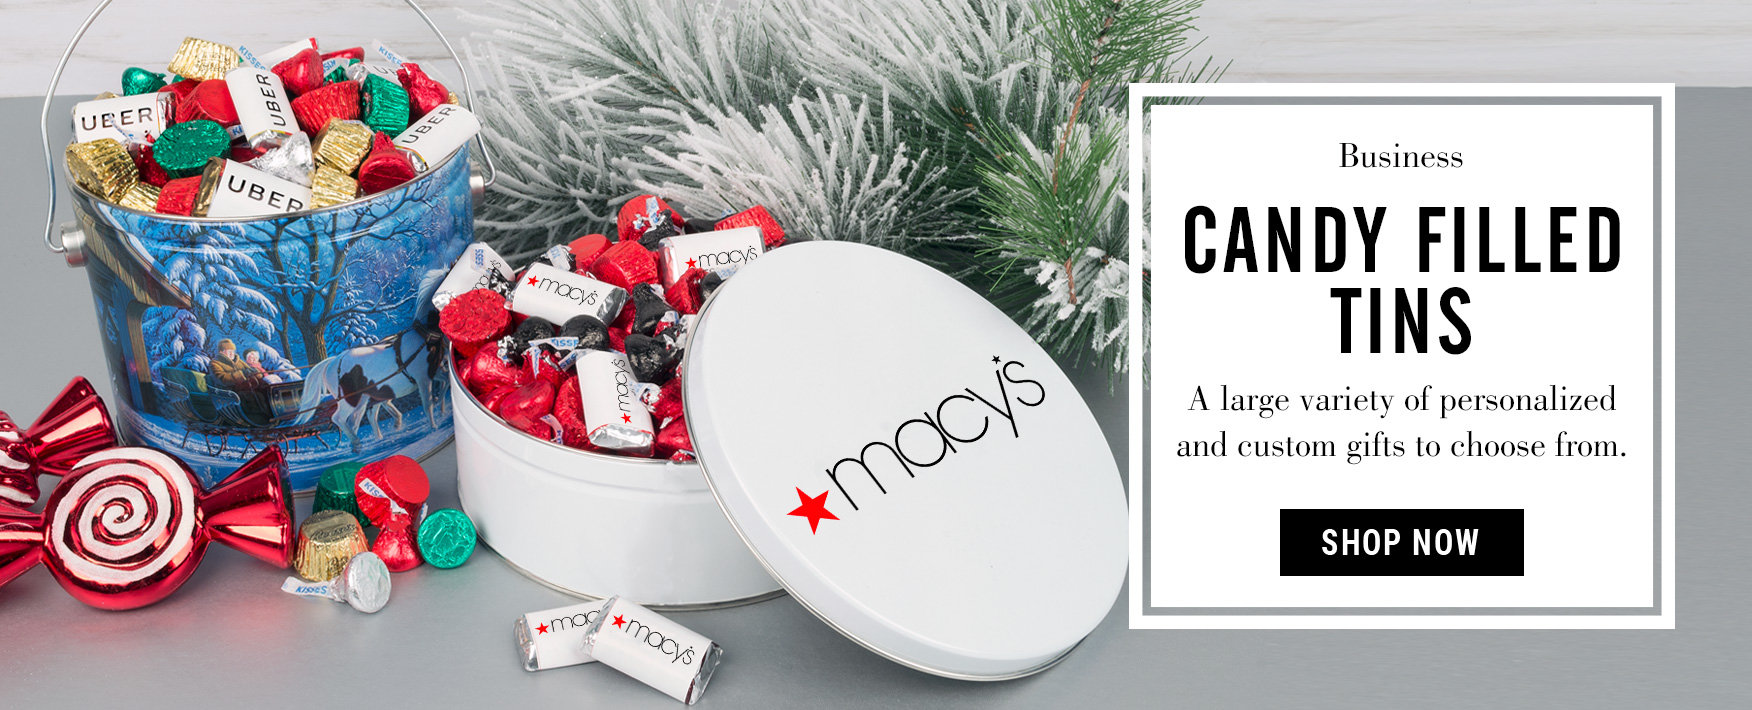 Personalized Chirstmas Holiday Business Gifts